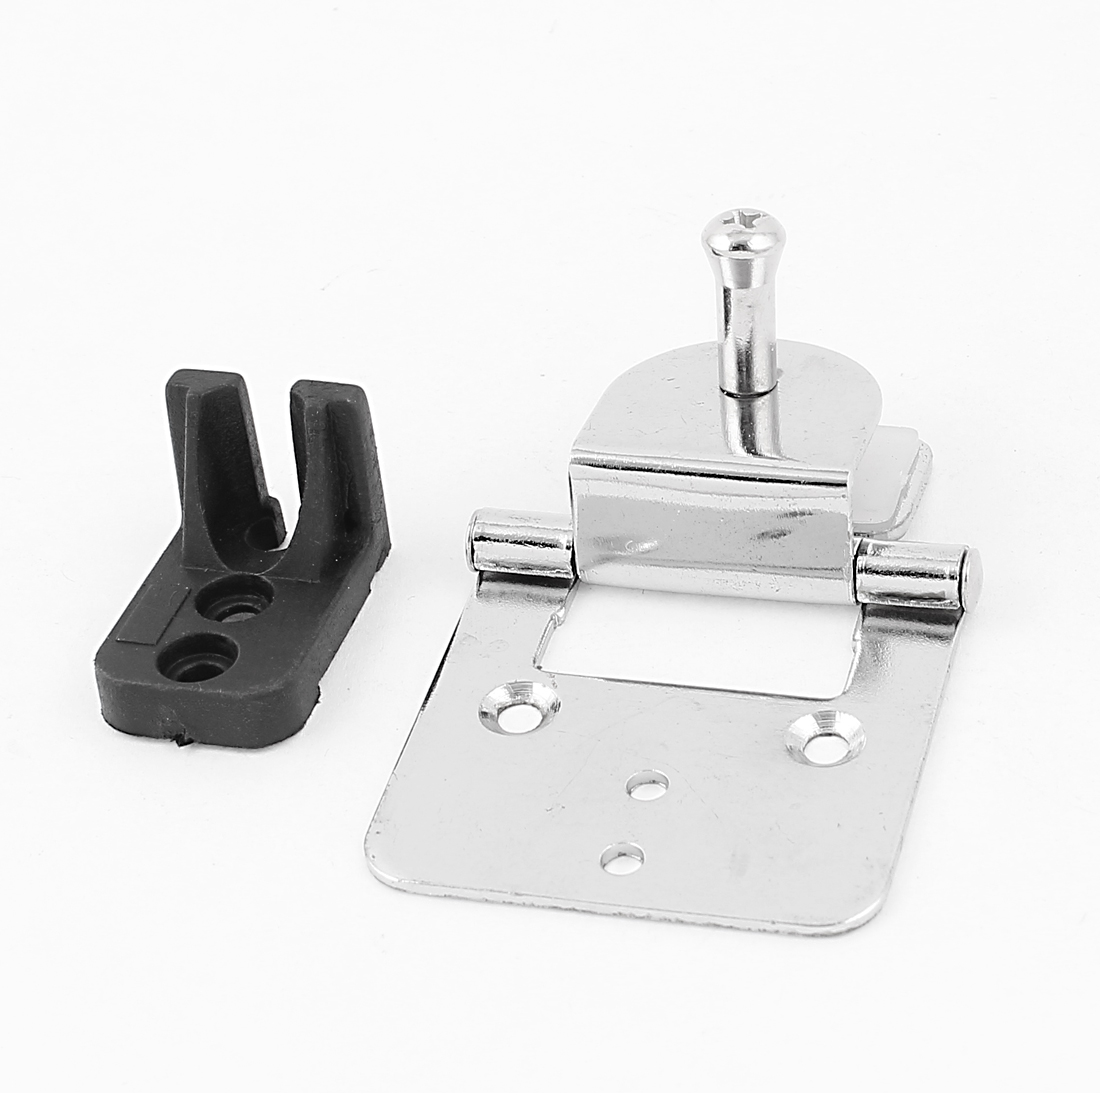 Bathroom Shower Stainless Steel Shelf Support Clamp Clip Door Hinge for 8mm Thickness Glass